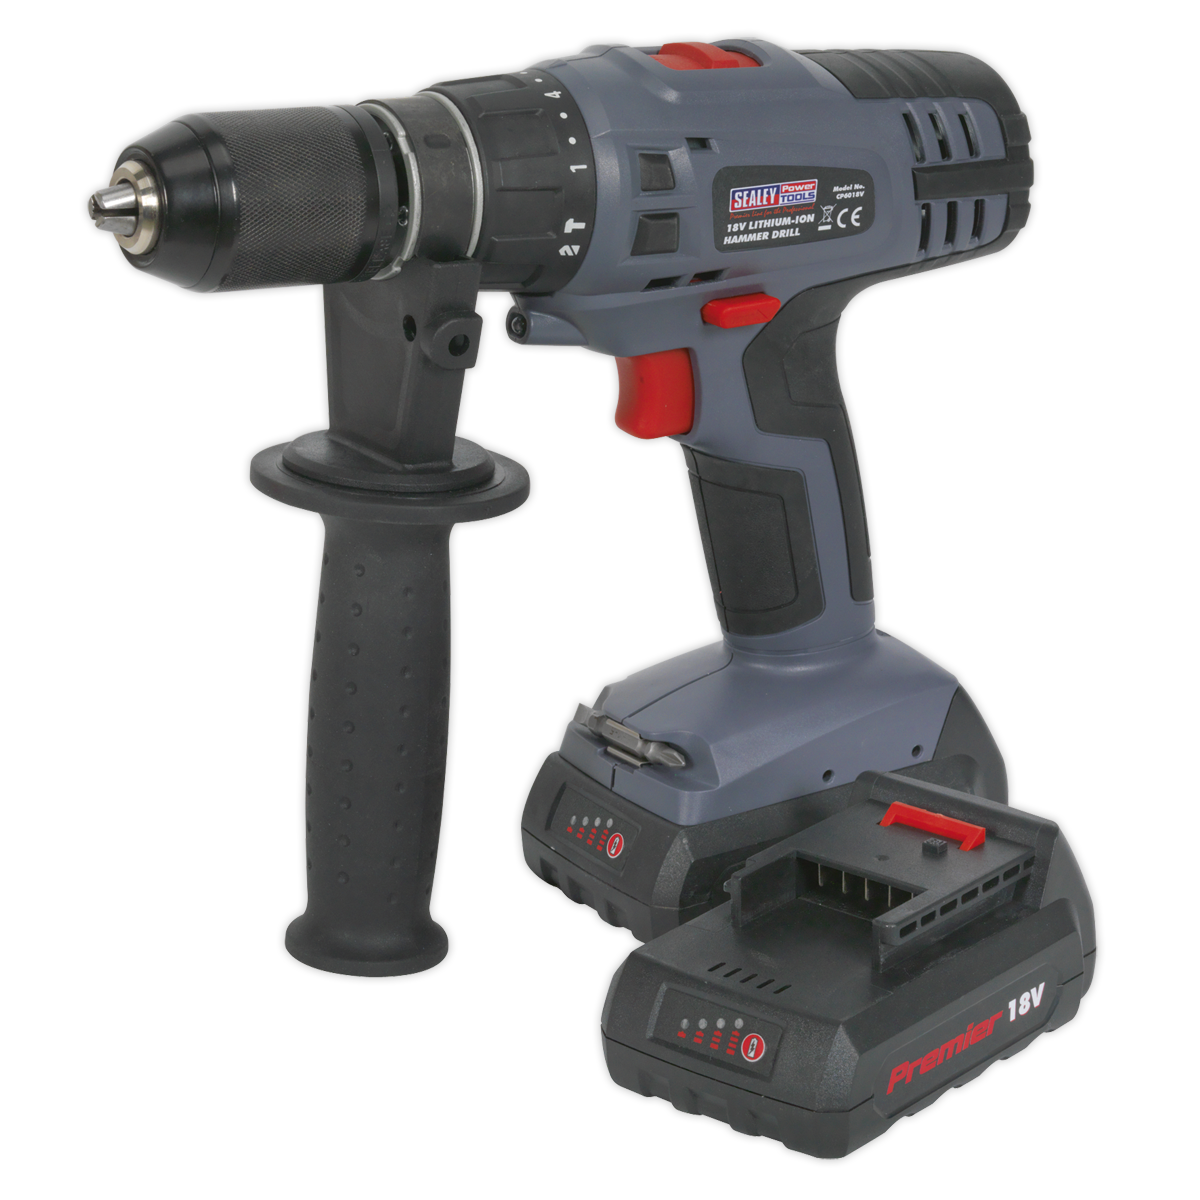 Cordless Hammer Drill/Driver ?13mm 18V Lithium-ion Super Torque 1hr Charge - 2 Batteries